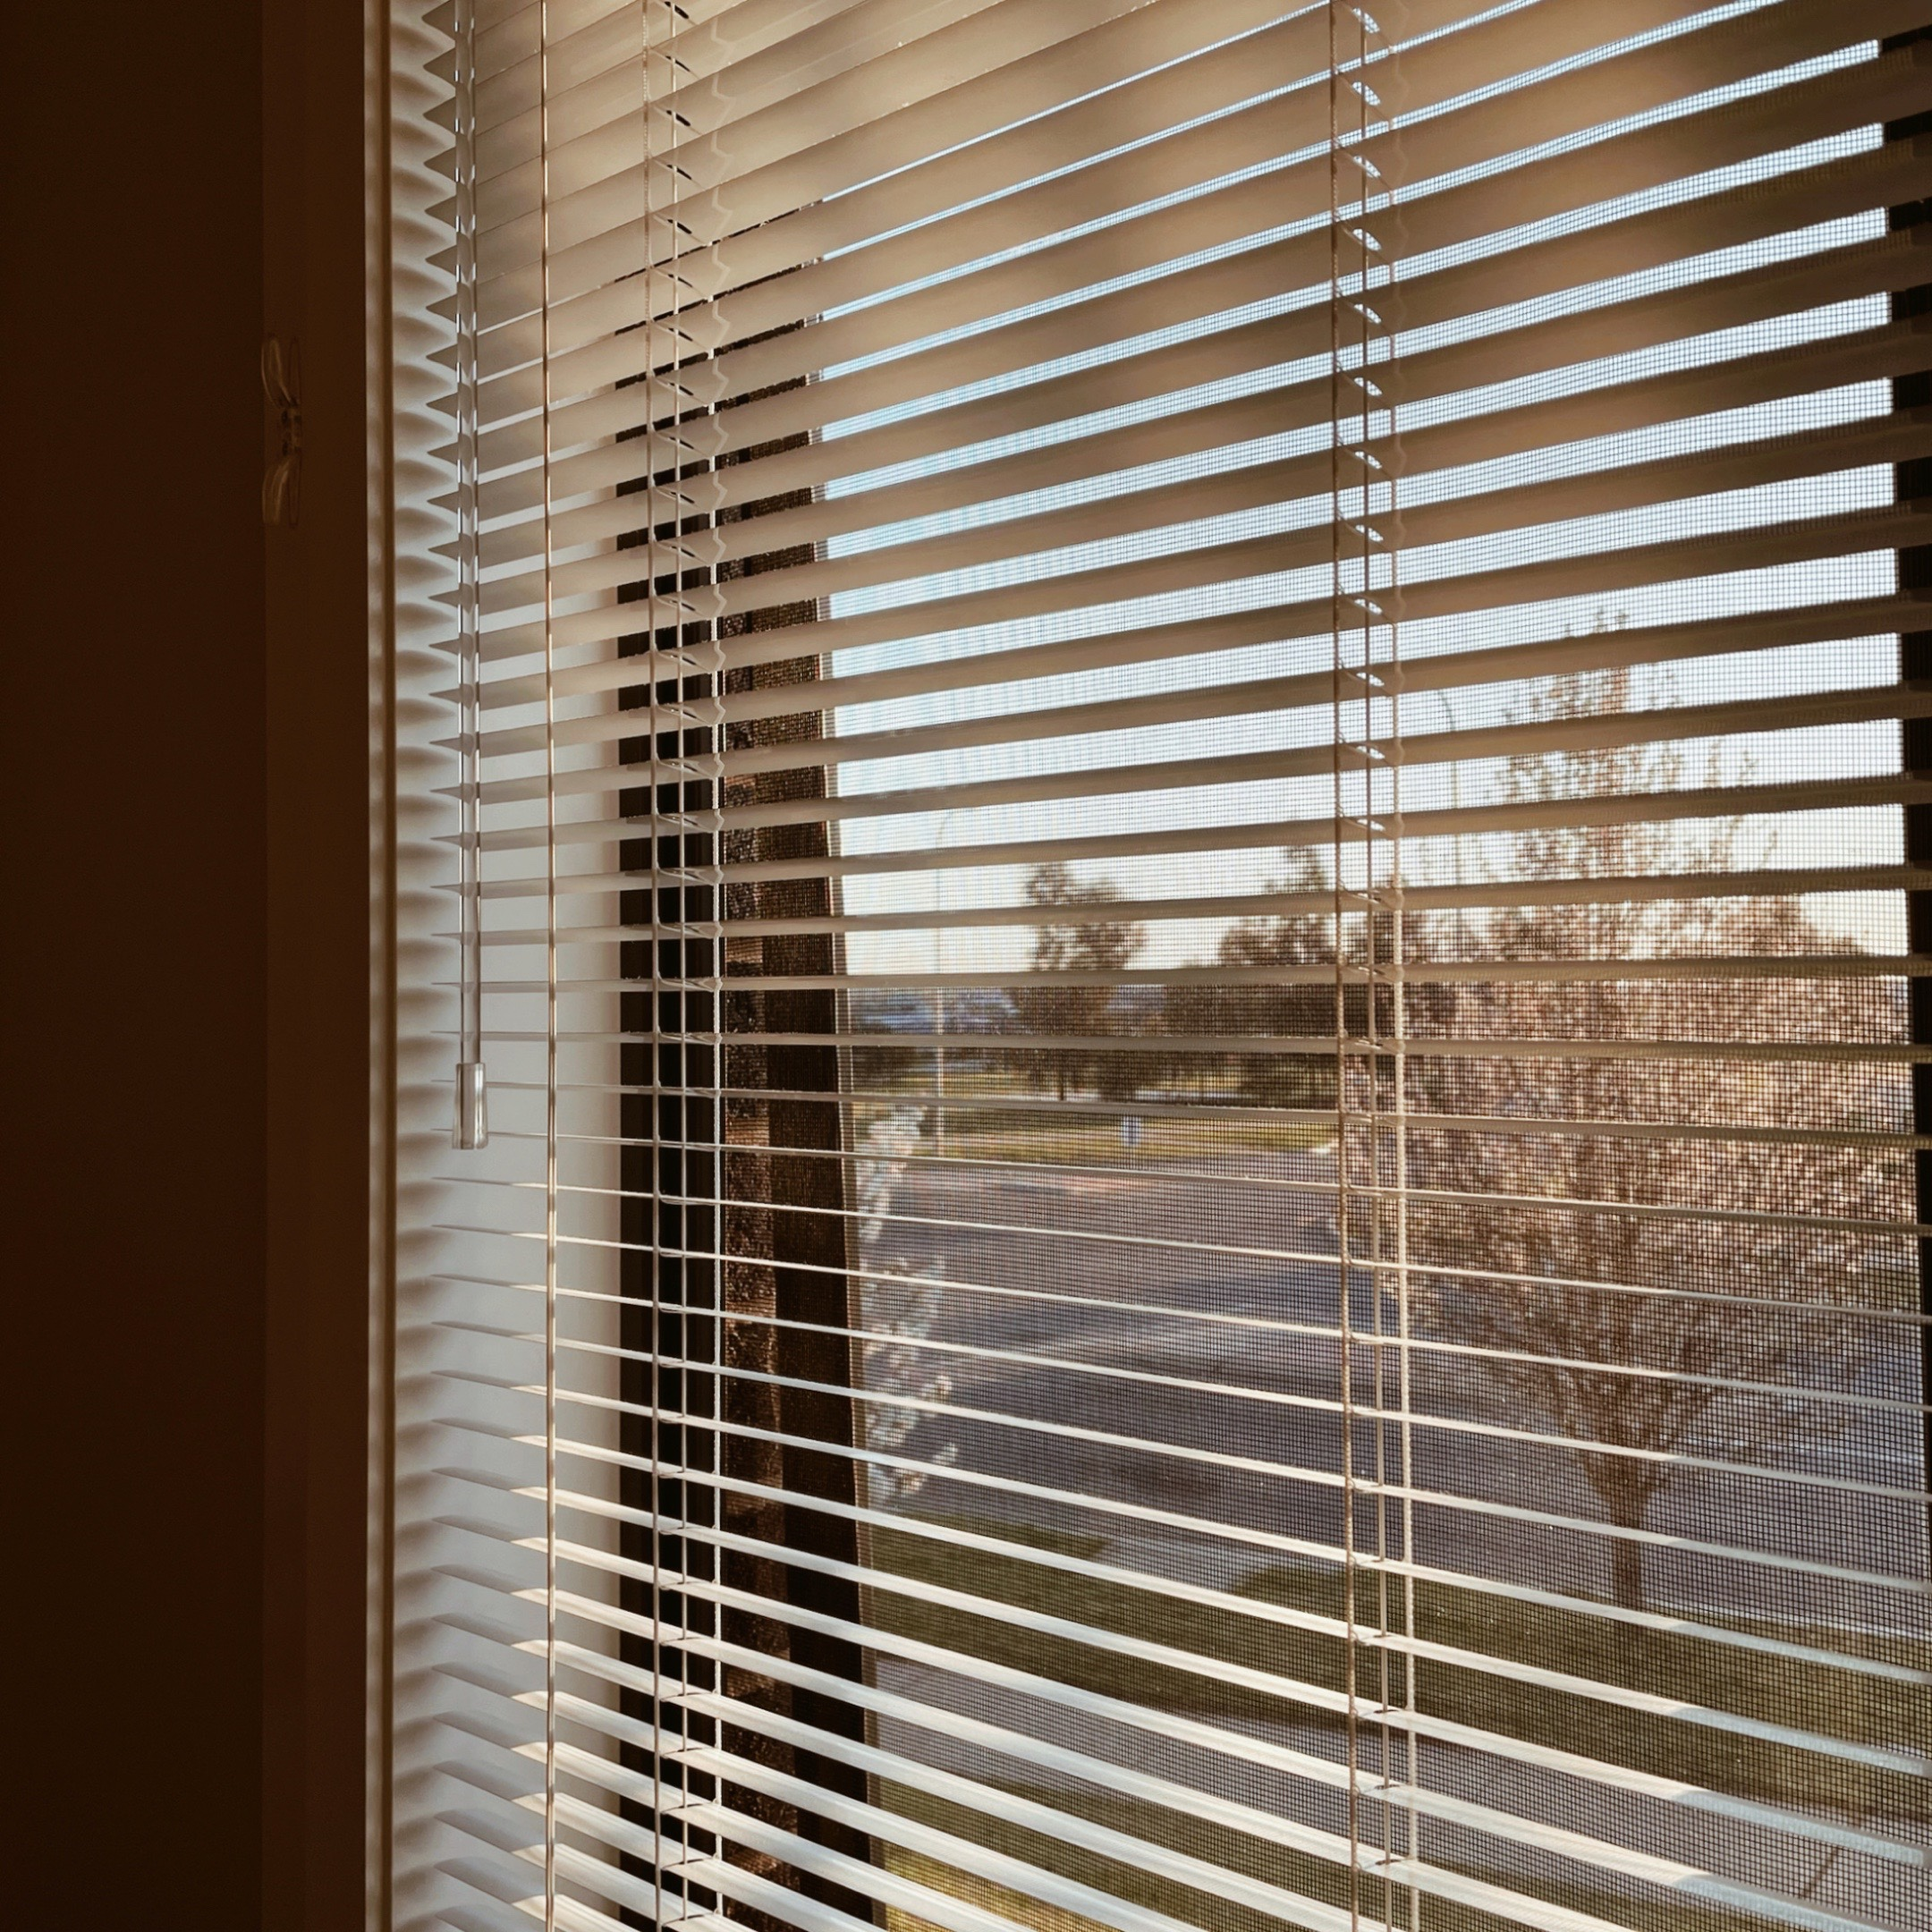 Looking through blinds out on a front yard bathed in late afternoon light.